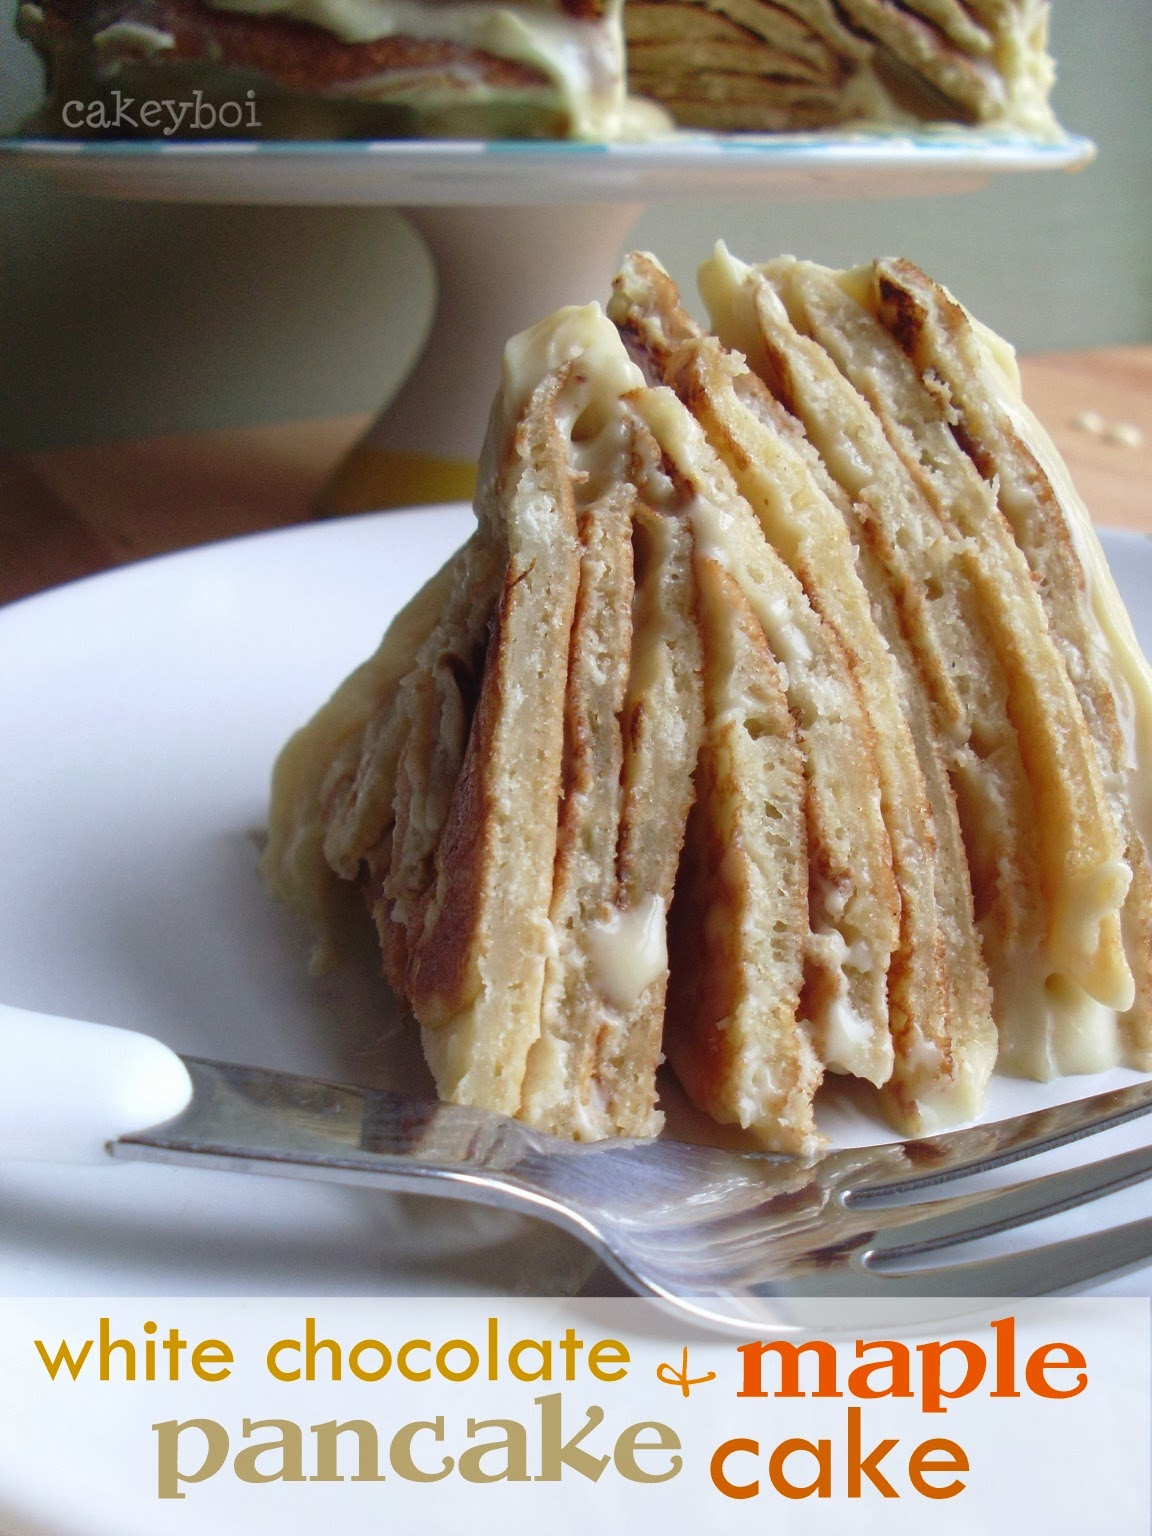 white chocolate and maple pancake cake